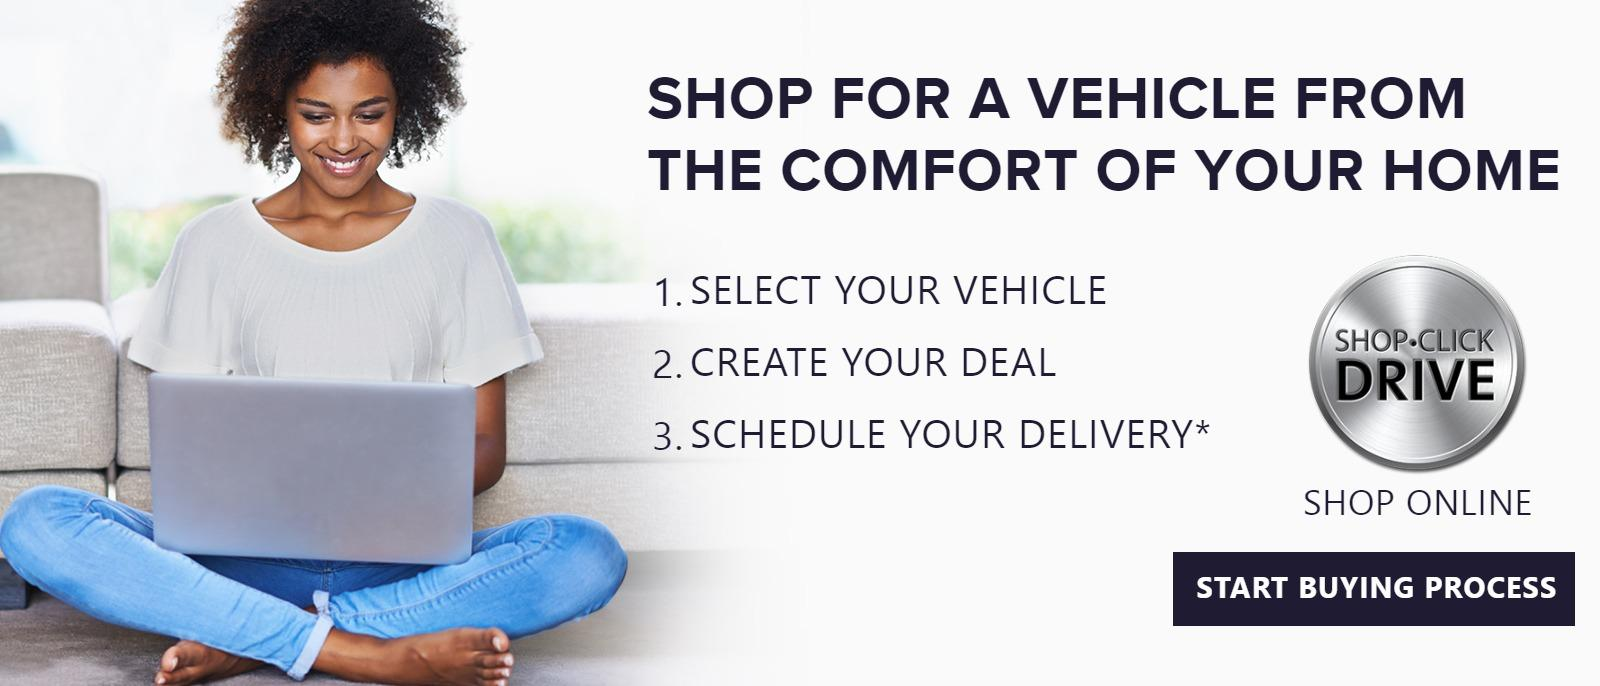 Shop For a Vehicle From the Comfort Of Your Home